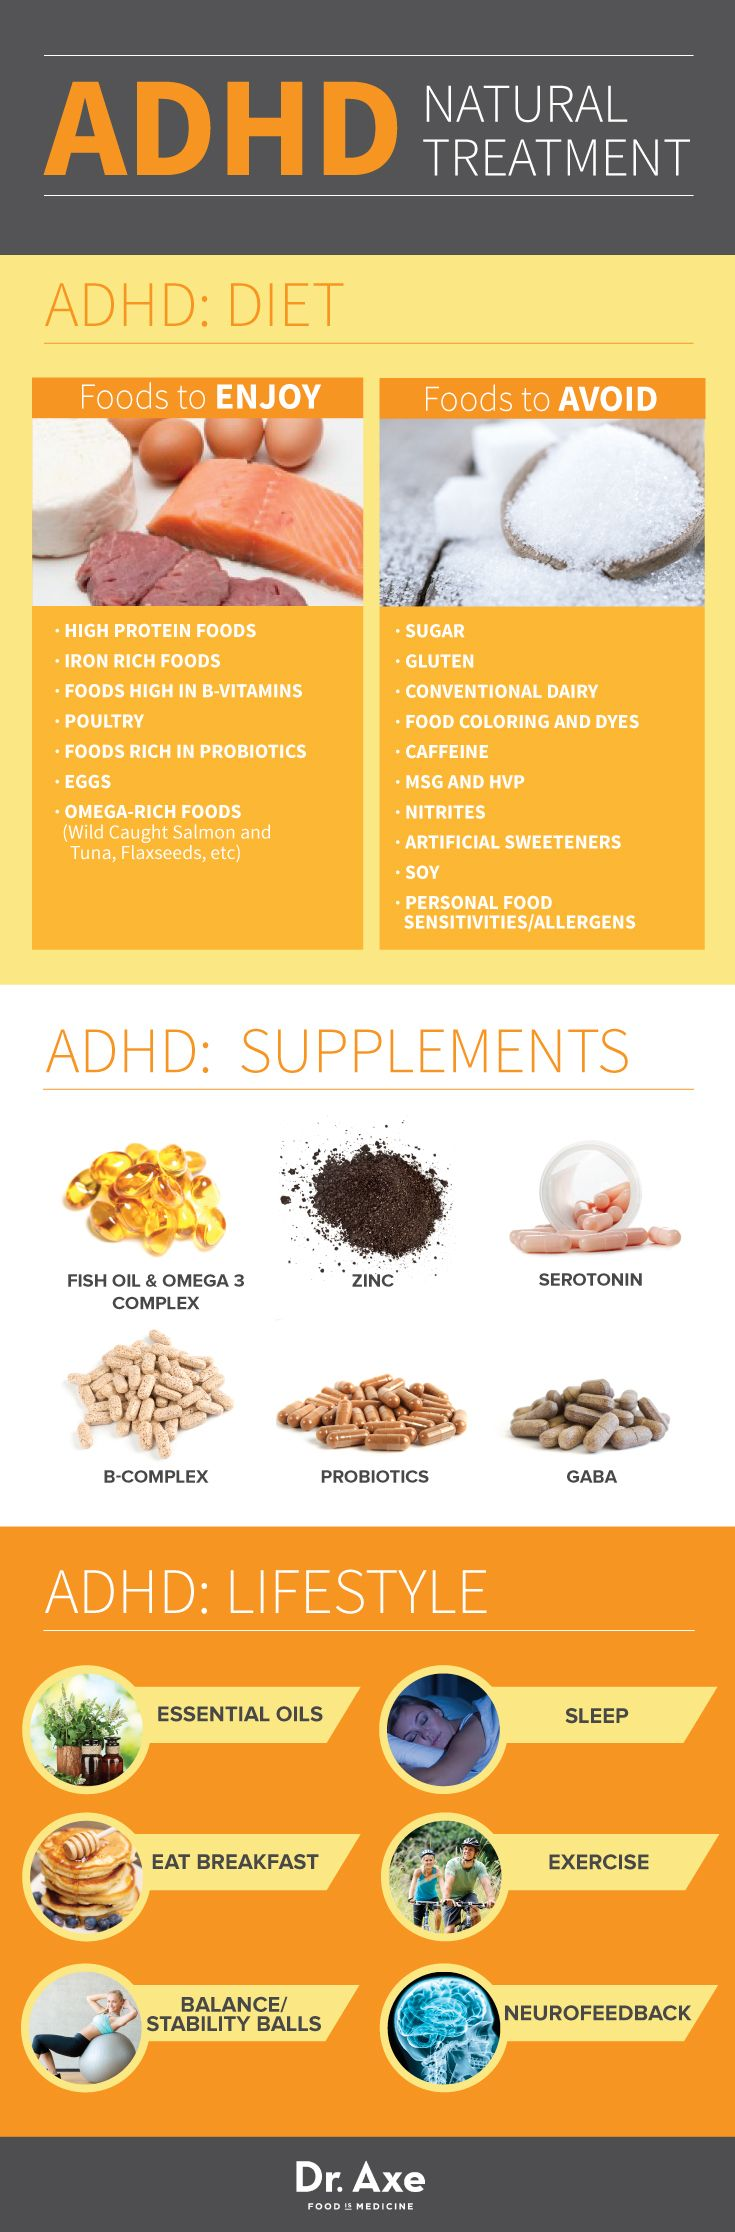 ADHD Natural Treatment Infographic Chart http://www.draxe.com #health #holistic #natural